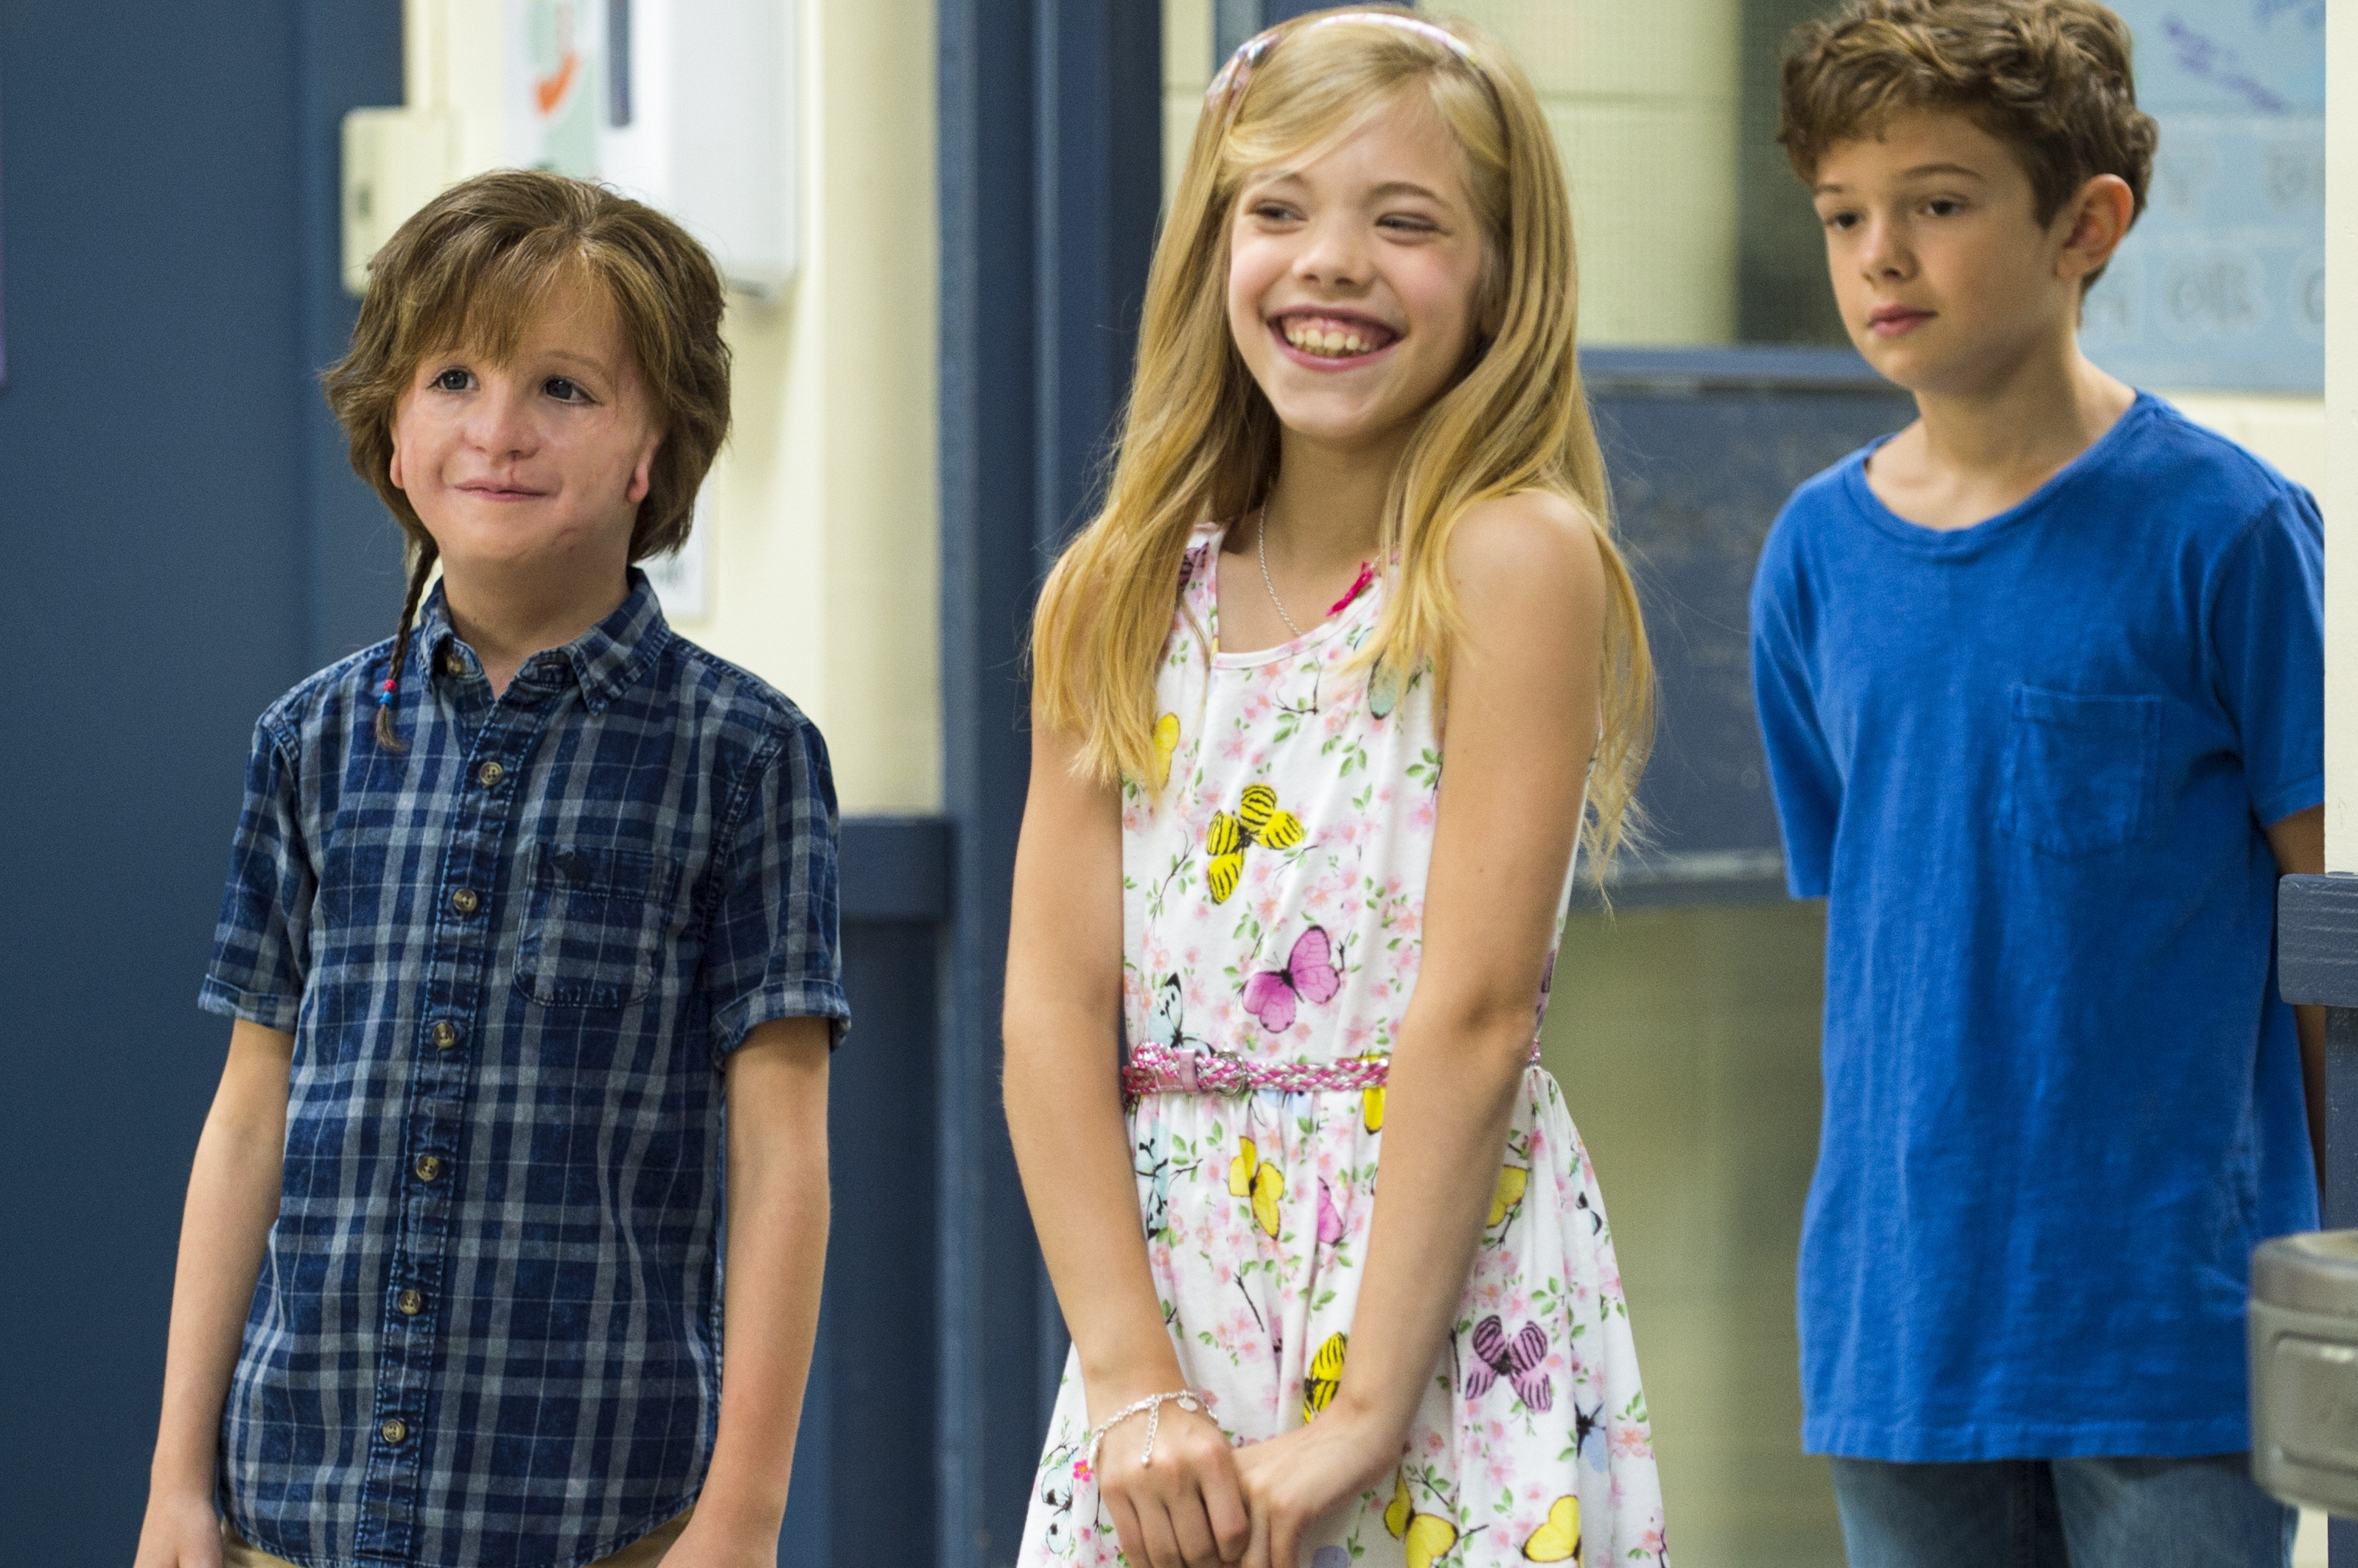 """In the new movie """"Wonder"""", children learn an important lesson about how to Choose Kind"""